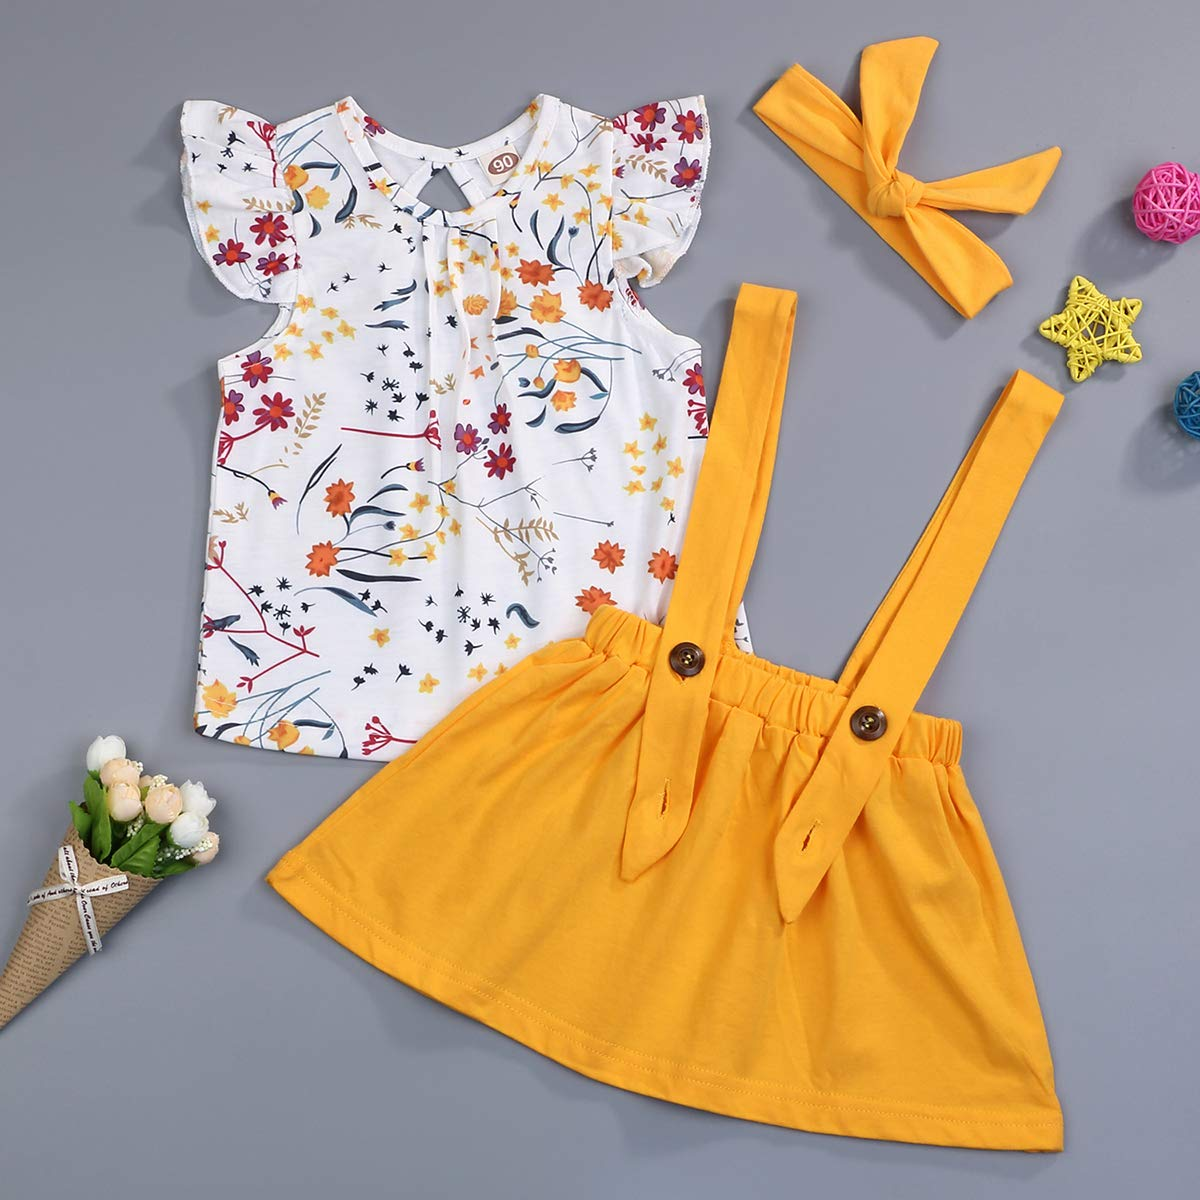 Toddler Girl Clothes Ruffle Floral T-Shirt and Overall Skirt with Headband Outfit Sets